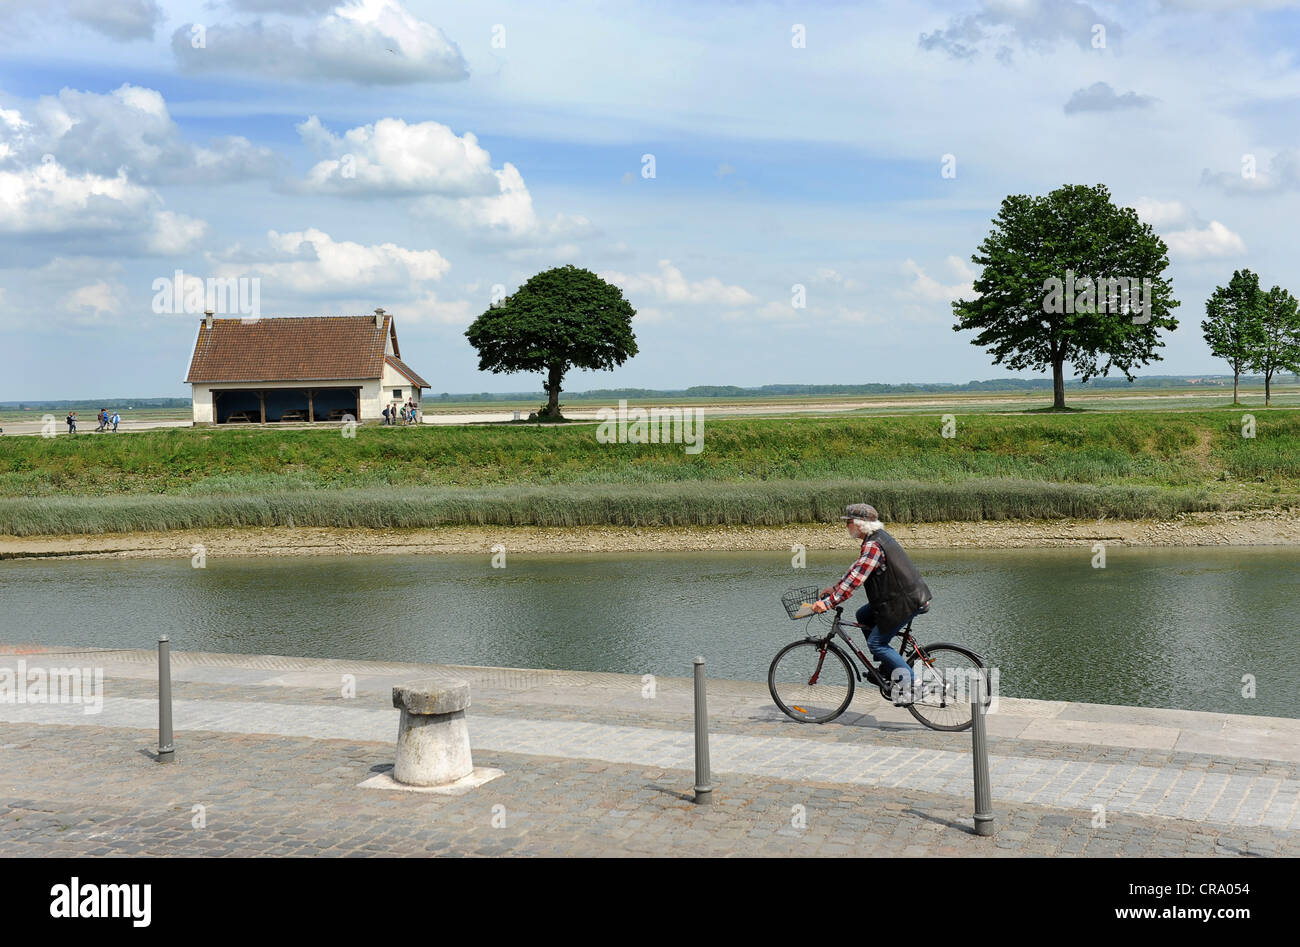 Man riding bicycle along River Somme in the baie de somme St Valery Sur Somme Picardy France - Stock Image